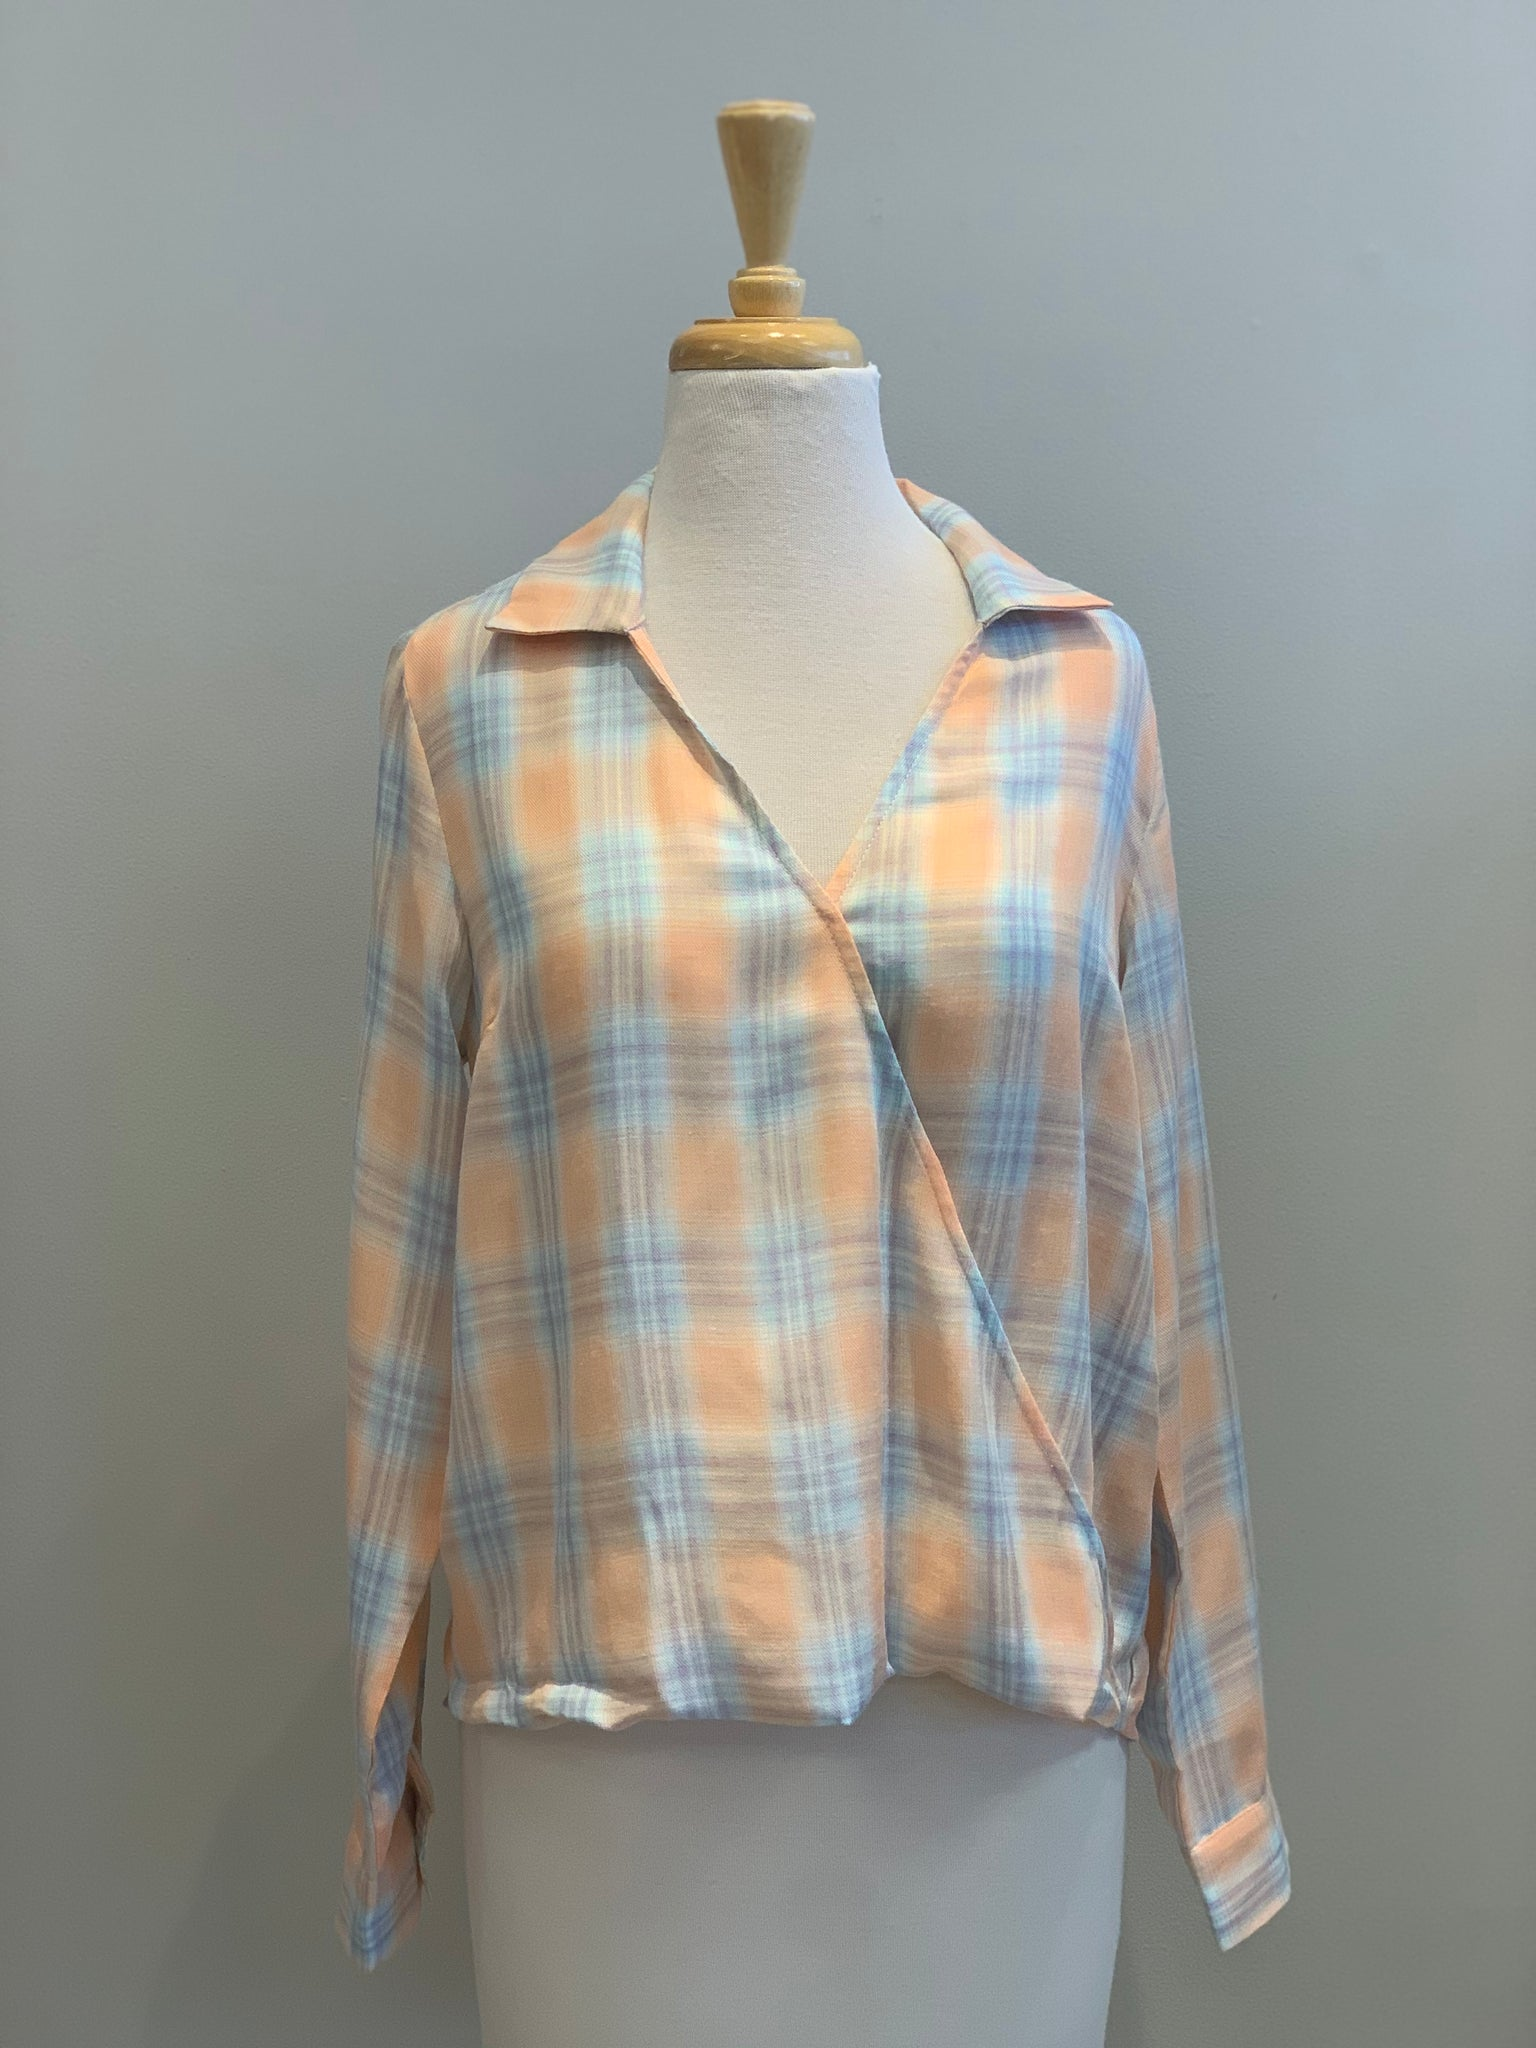 Hem & Thread Plaid Surplice Blouse - Showroom56